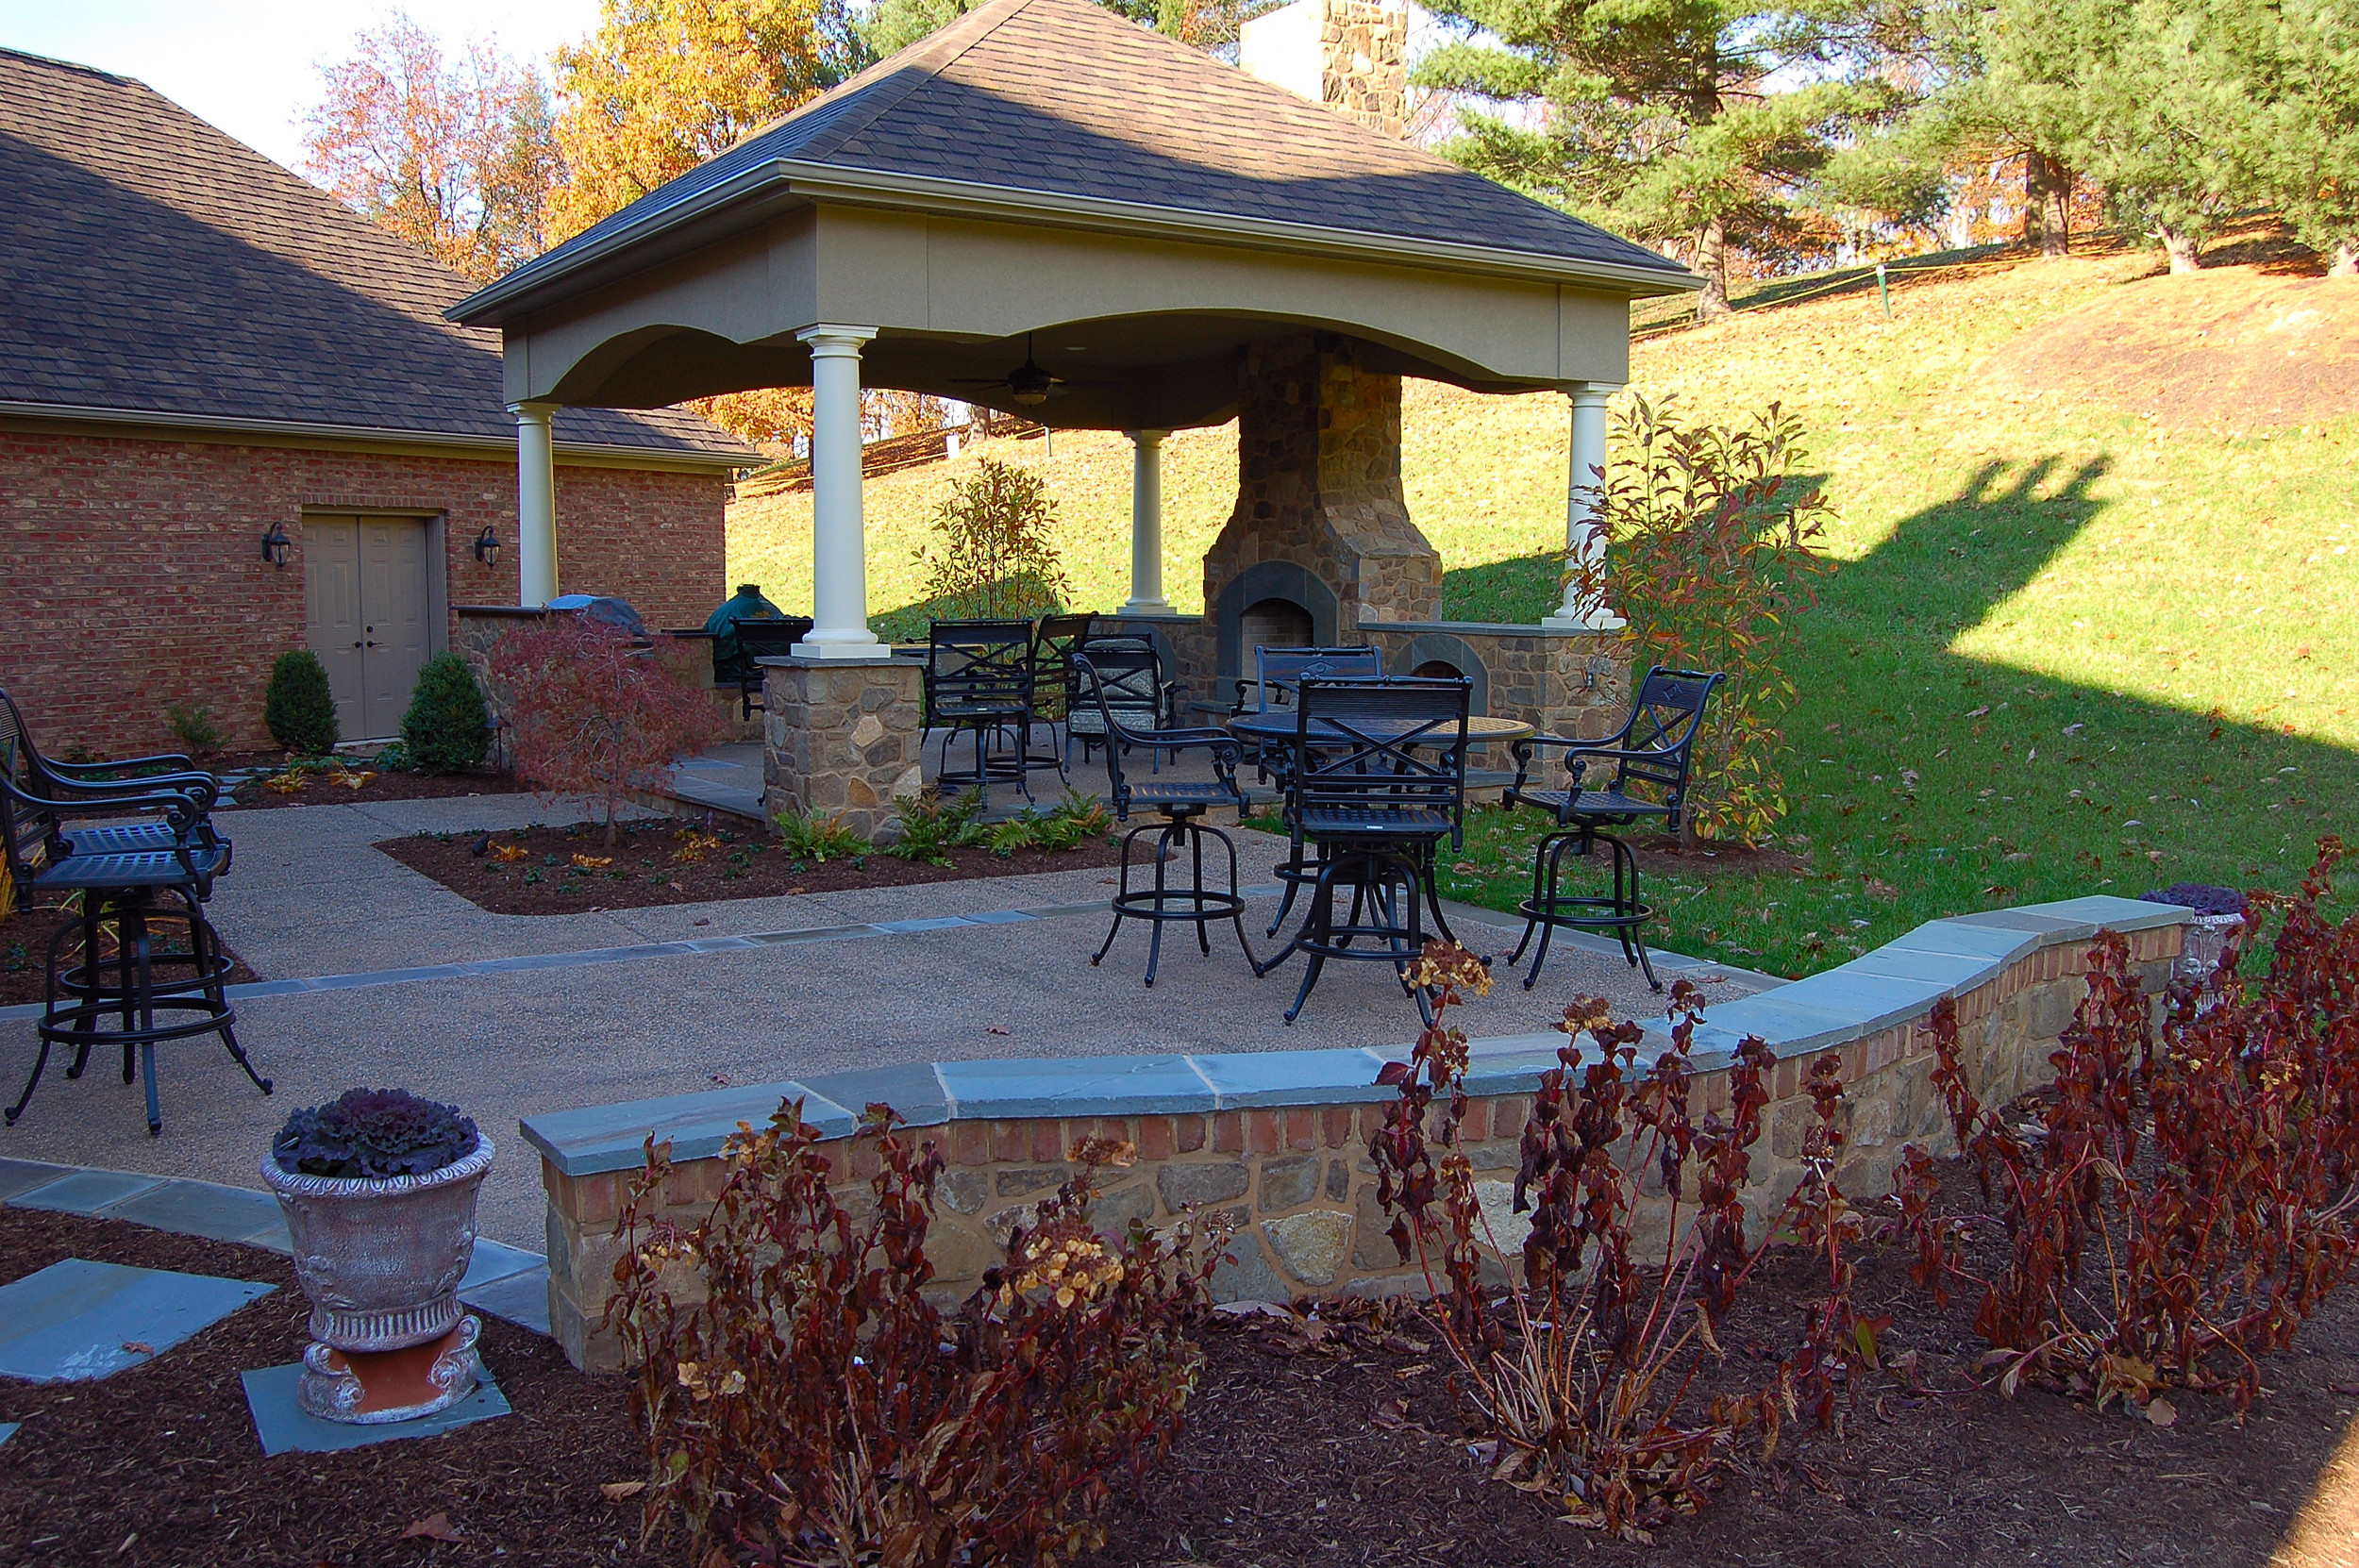 York Pa. residence with a outdoor pavilion, outdoor kitchen and outdoor fireplace. Natural stone walls and patios.